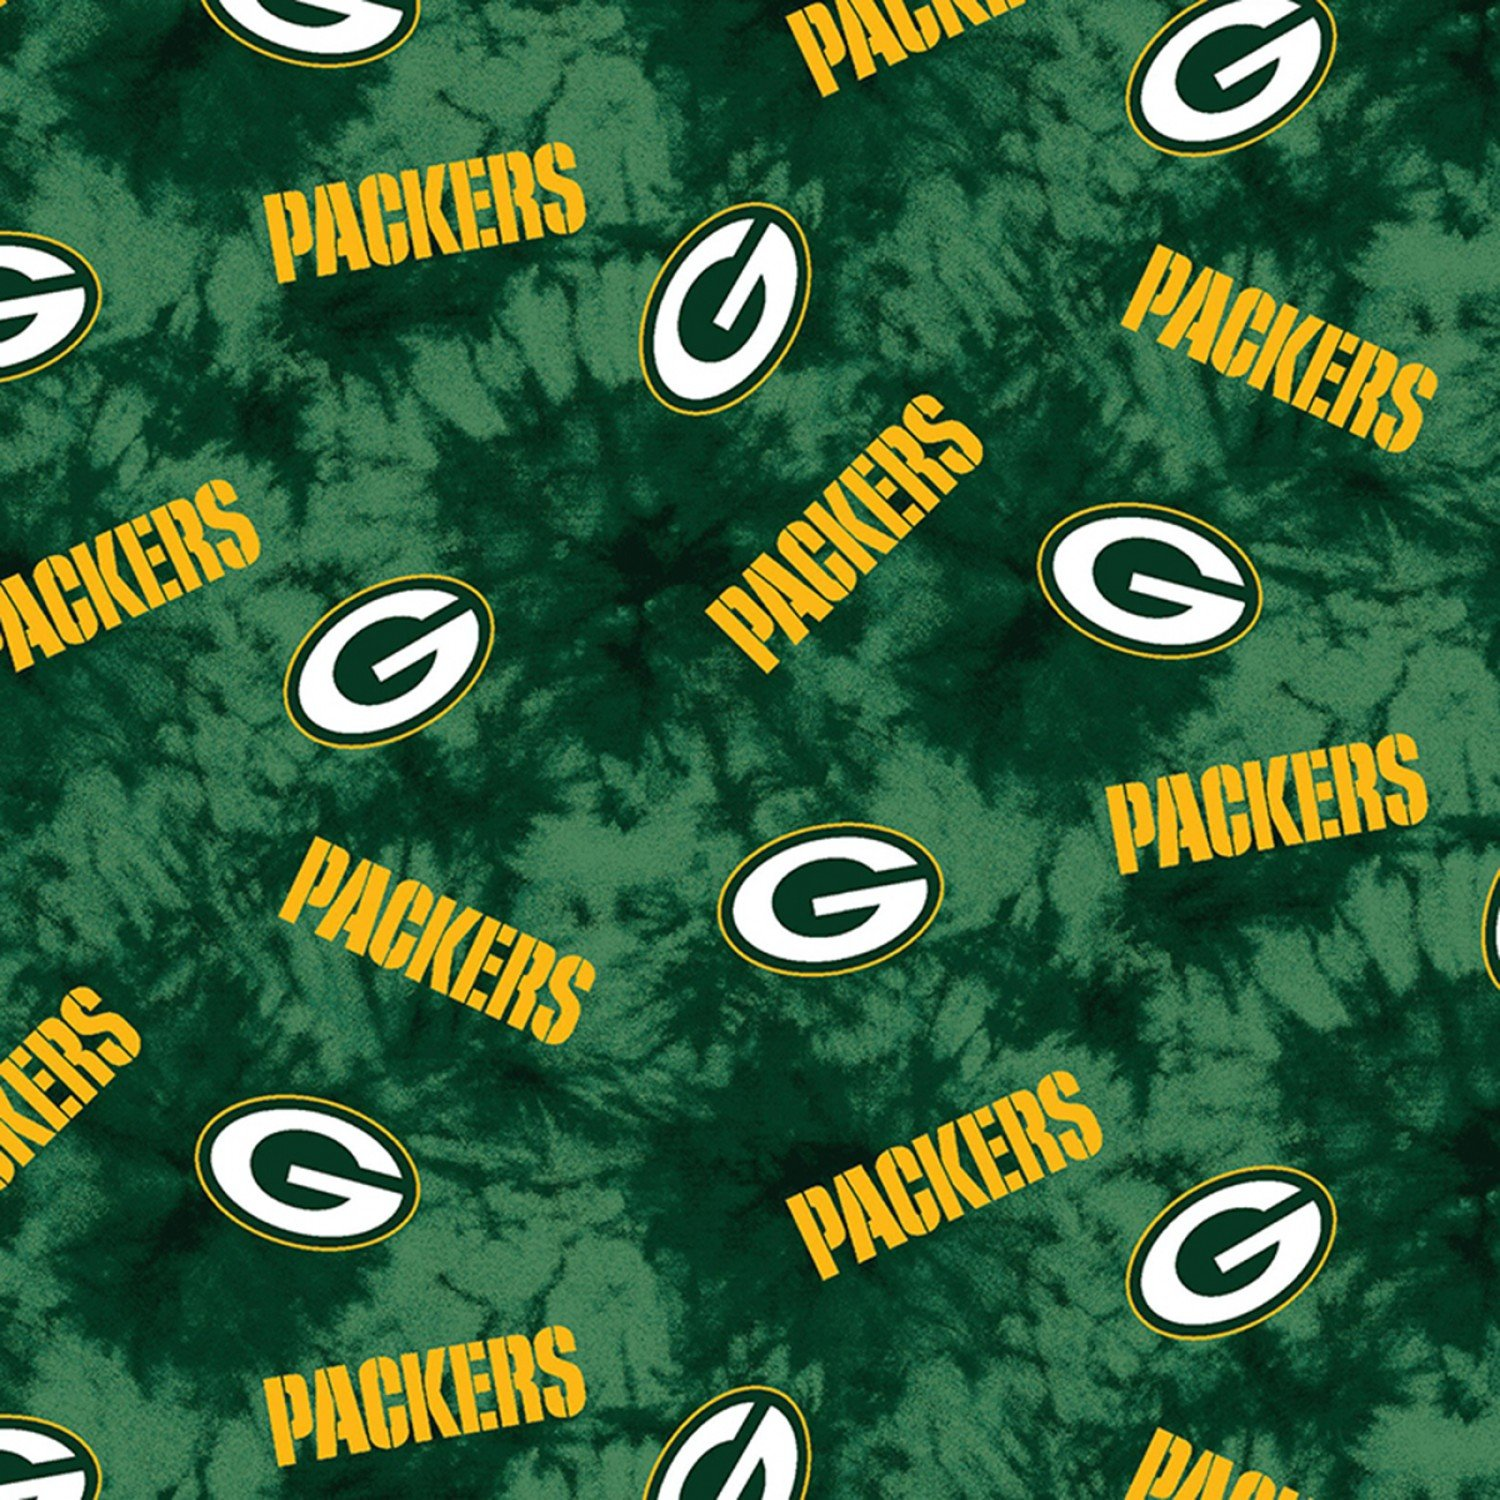 FT-NFL Flannel 14792-D Green Bay Packers